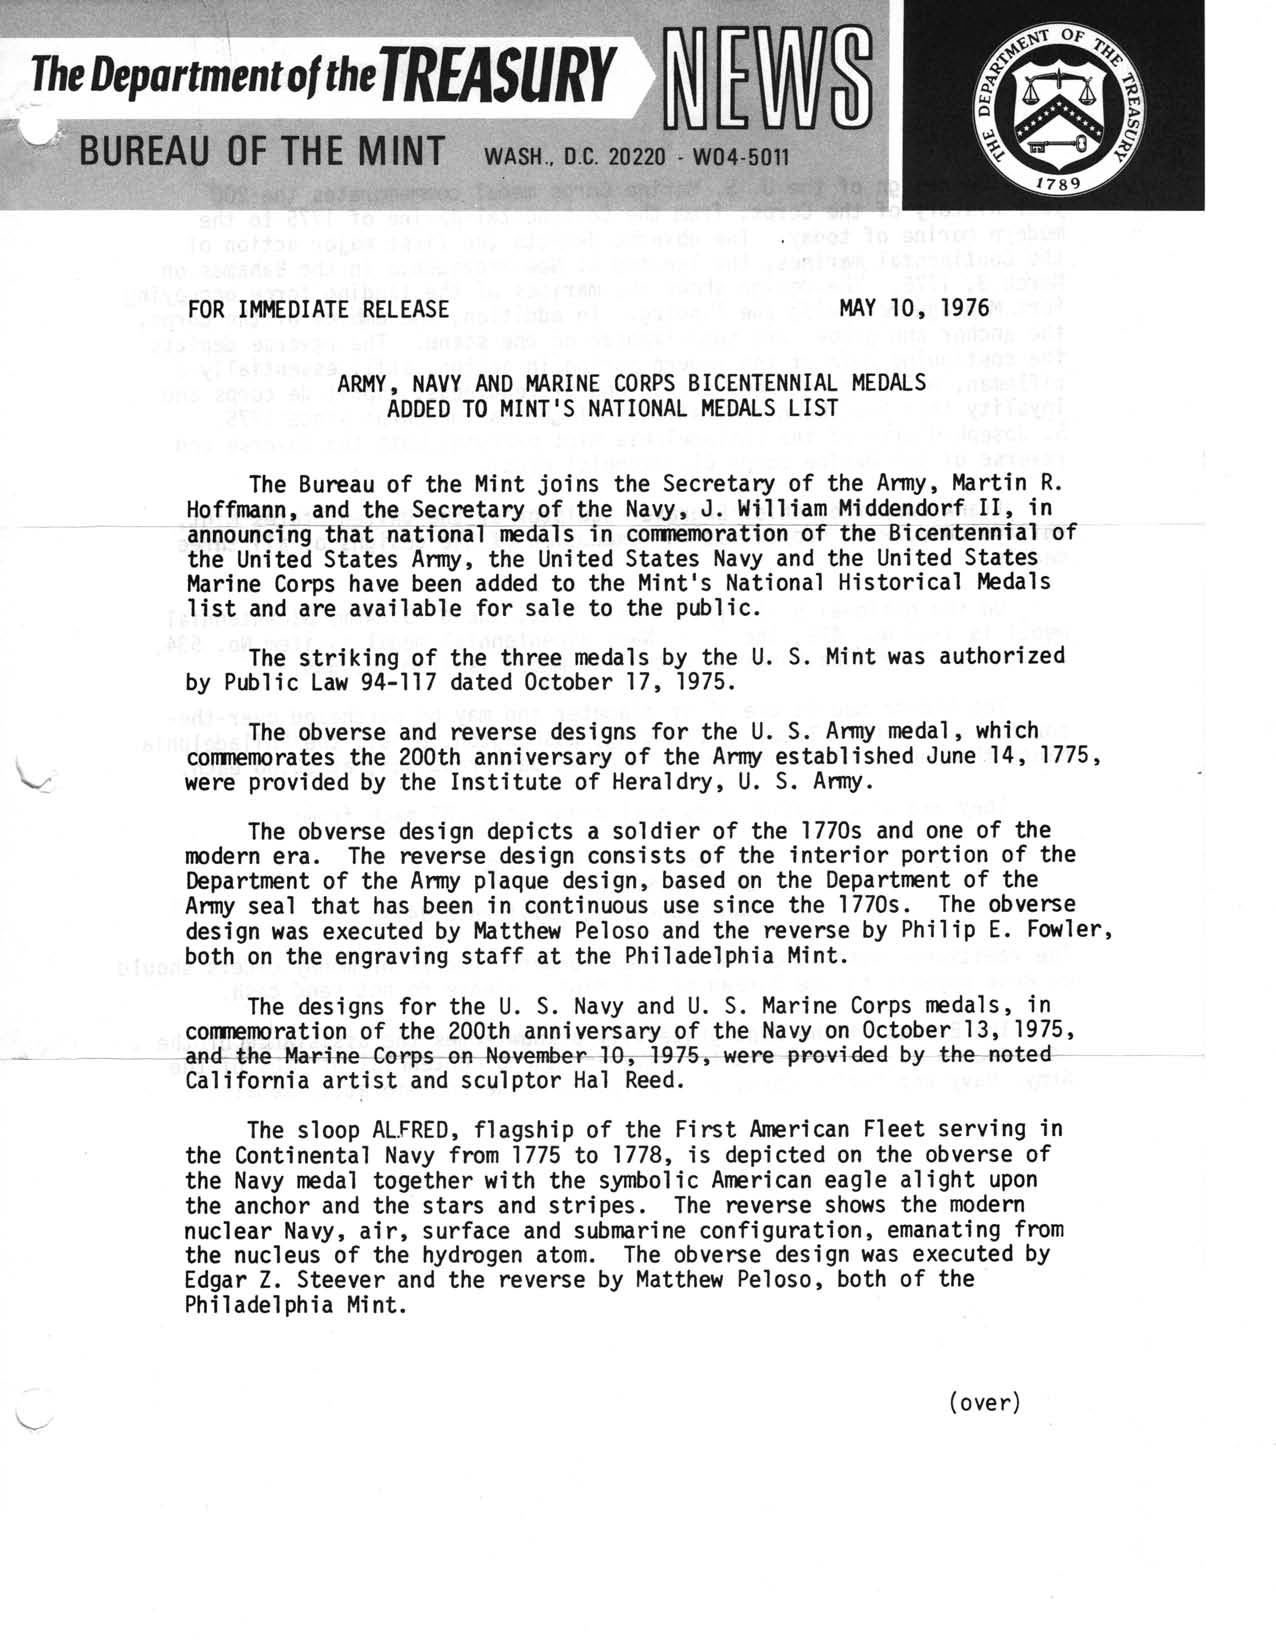 Historic Press Release: Military Medals on Medal List, Page 1